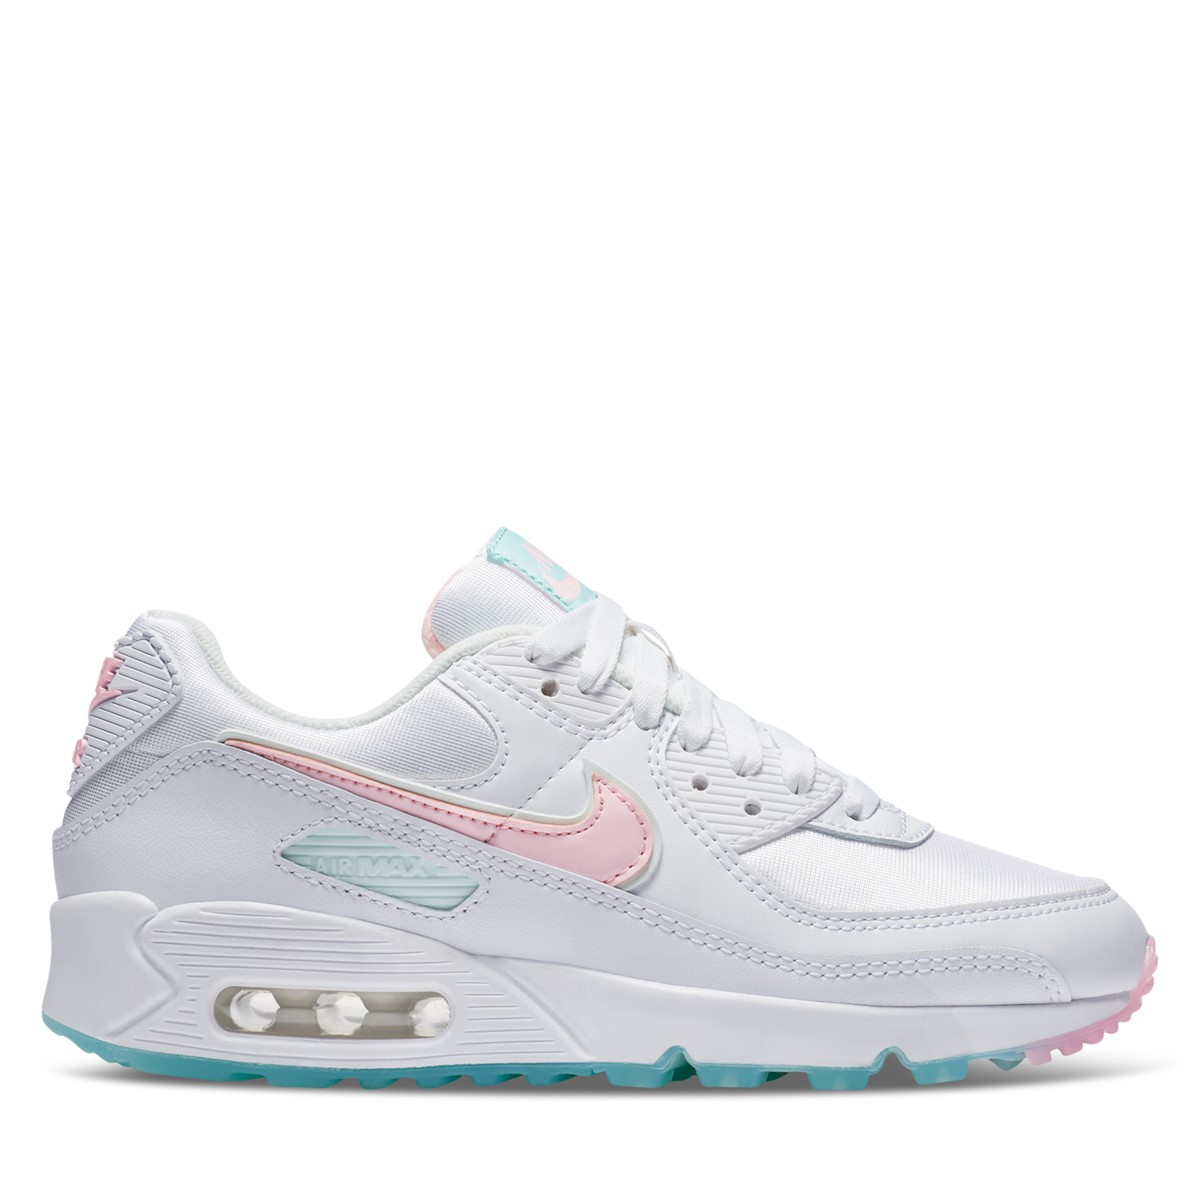 Women's Air Max 90 Sneakers in White/Baby Pink/Mint green